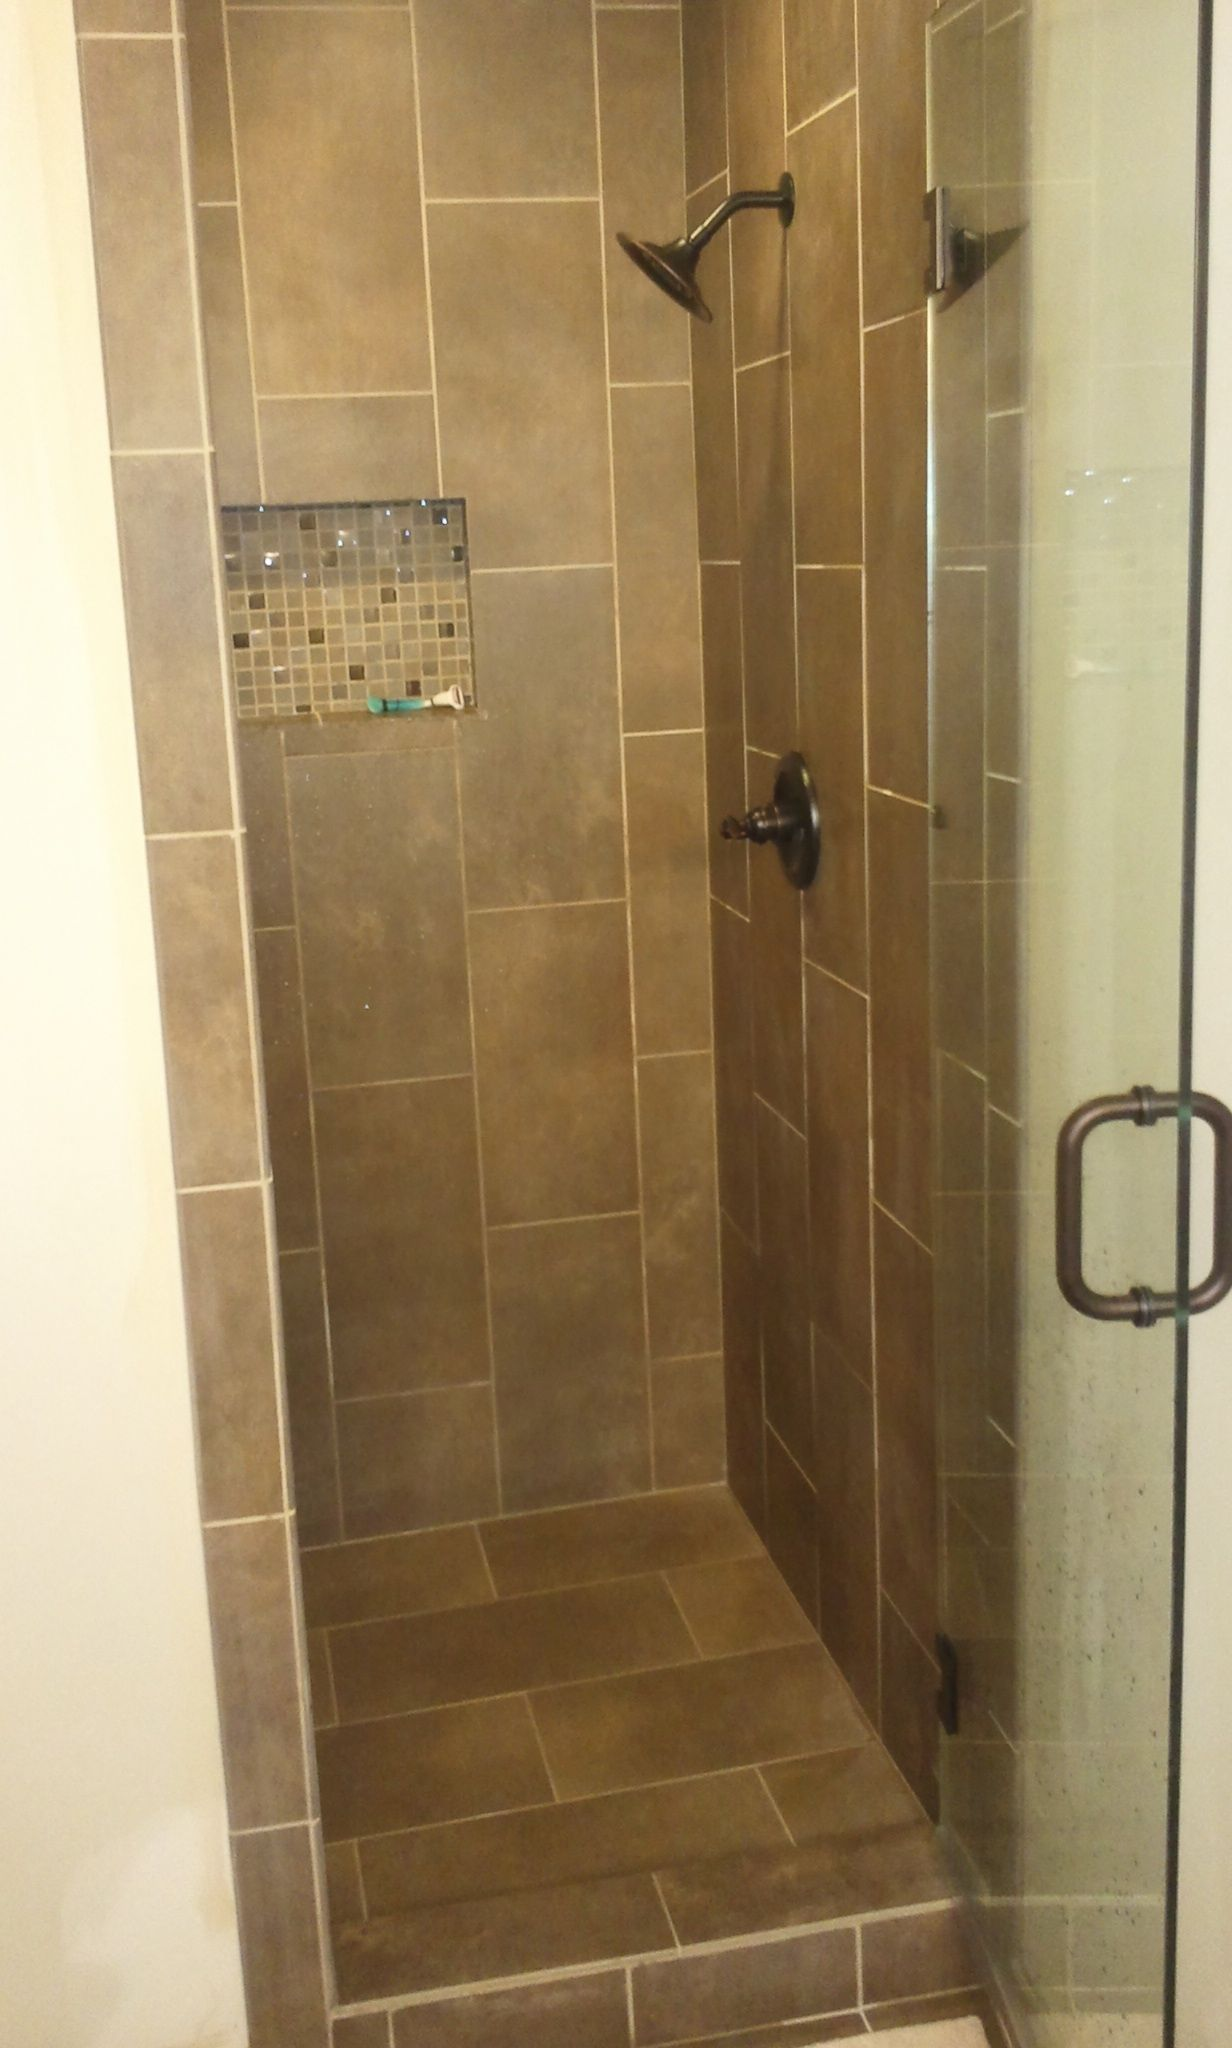 Tiles shower stall | New Giveaway - NorcalBrewingSolutions ...